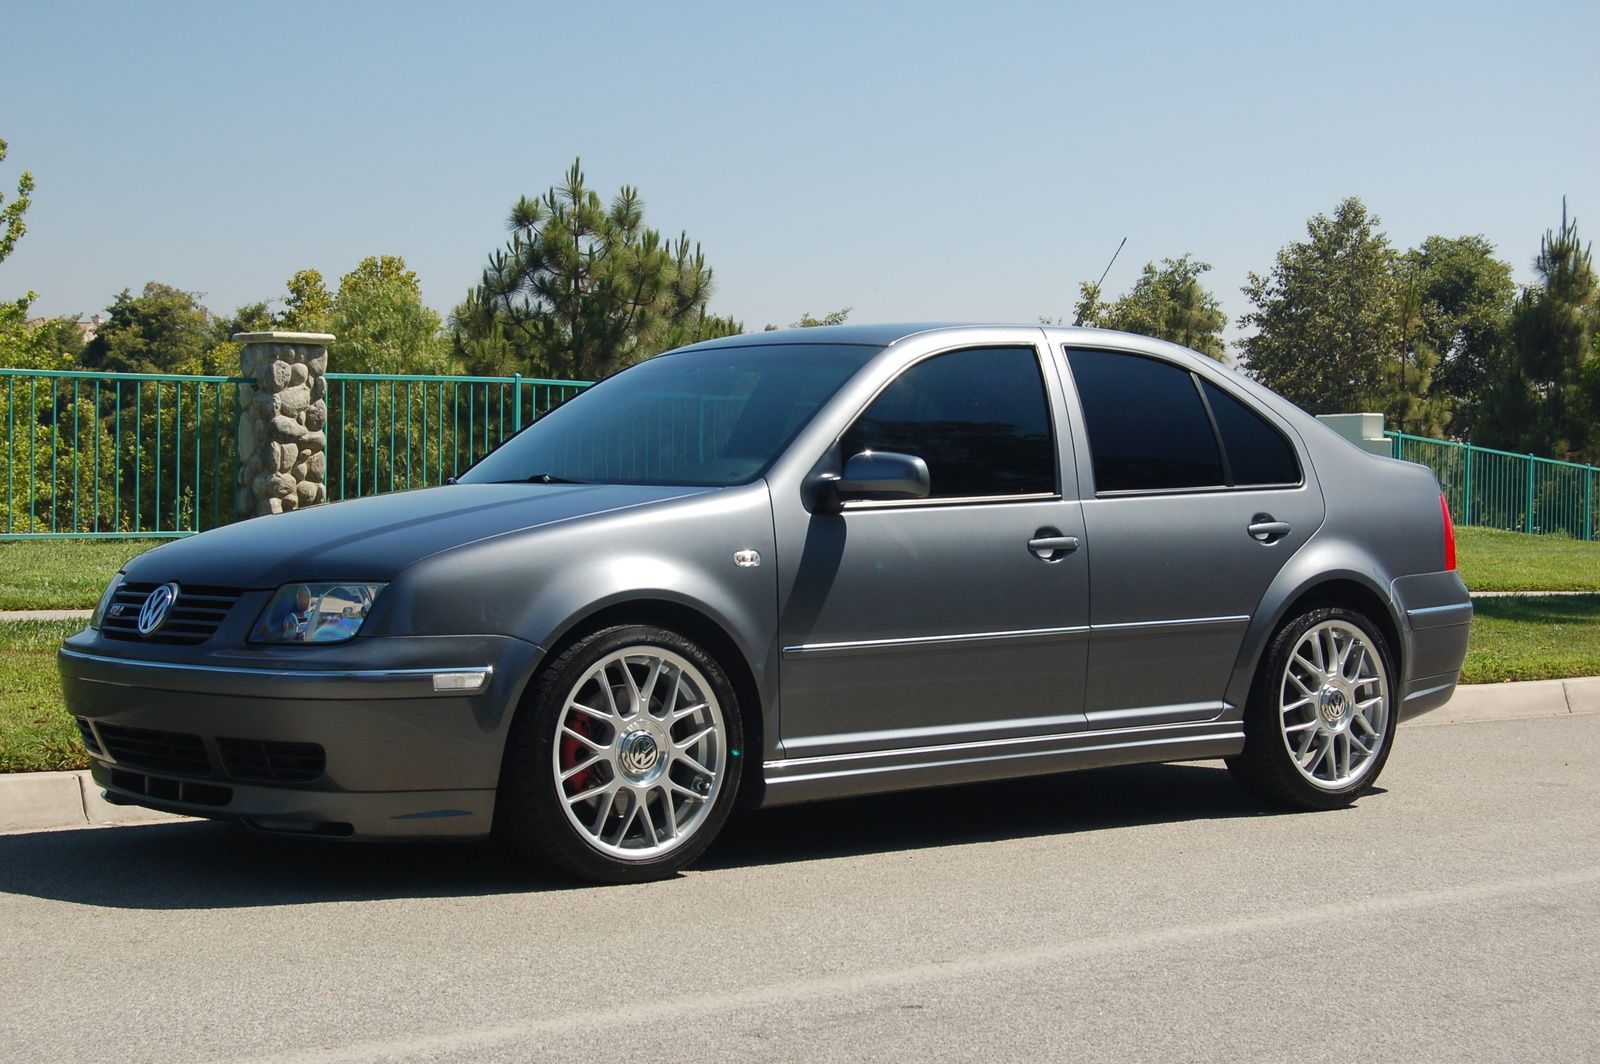 2005 volkswagen jetta gli jetta mk4 pinterest jetta gli volkswagen jetta and volkswagen. Black Bedroom Furniture Sets. Home Design Ideas